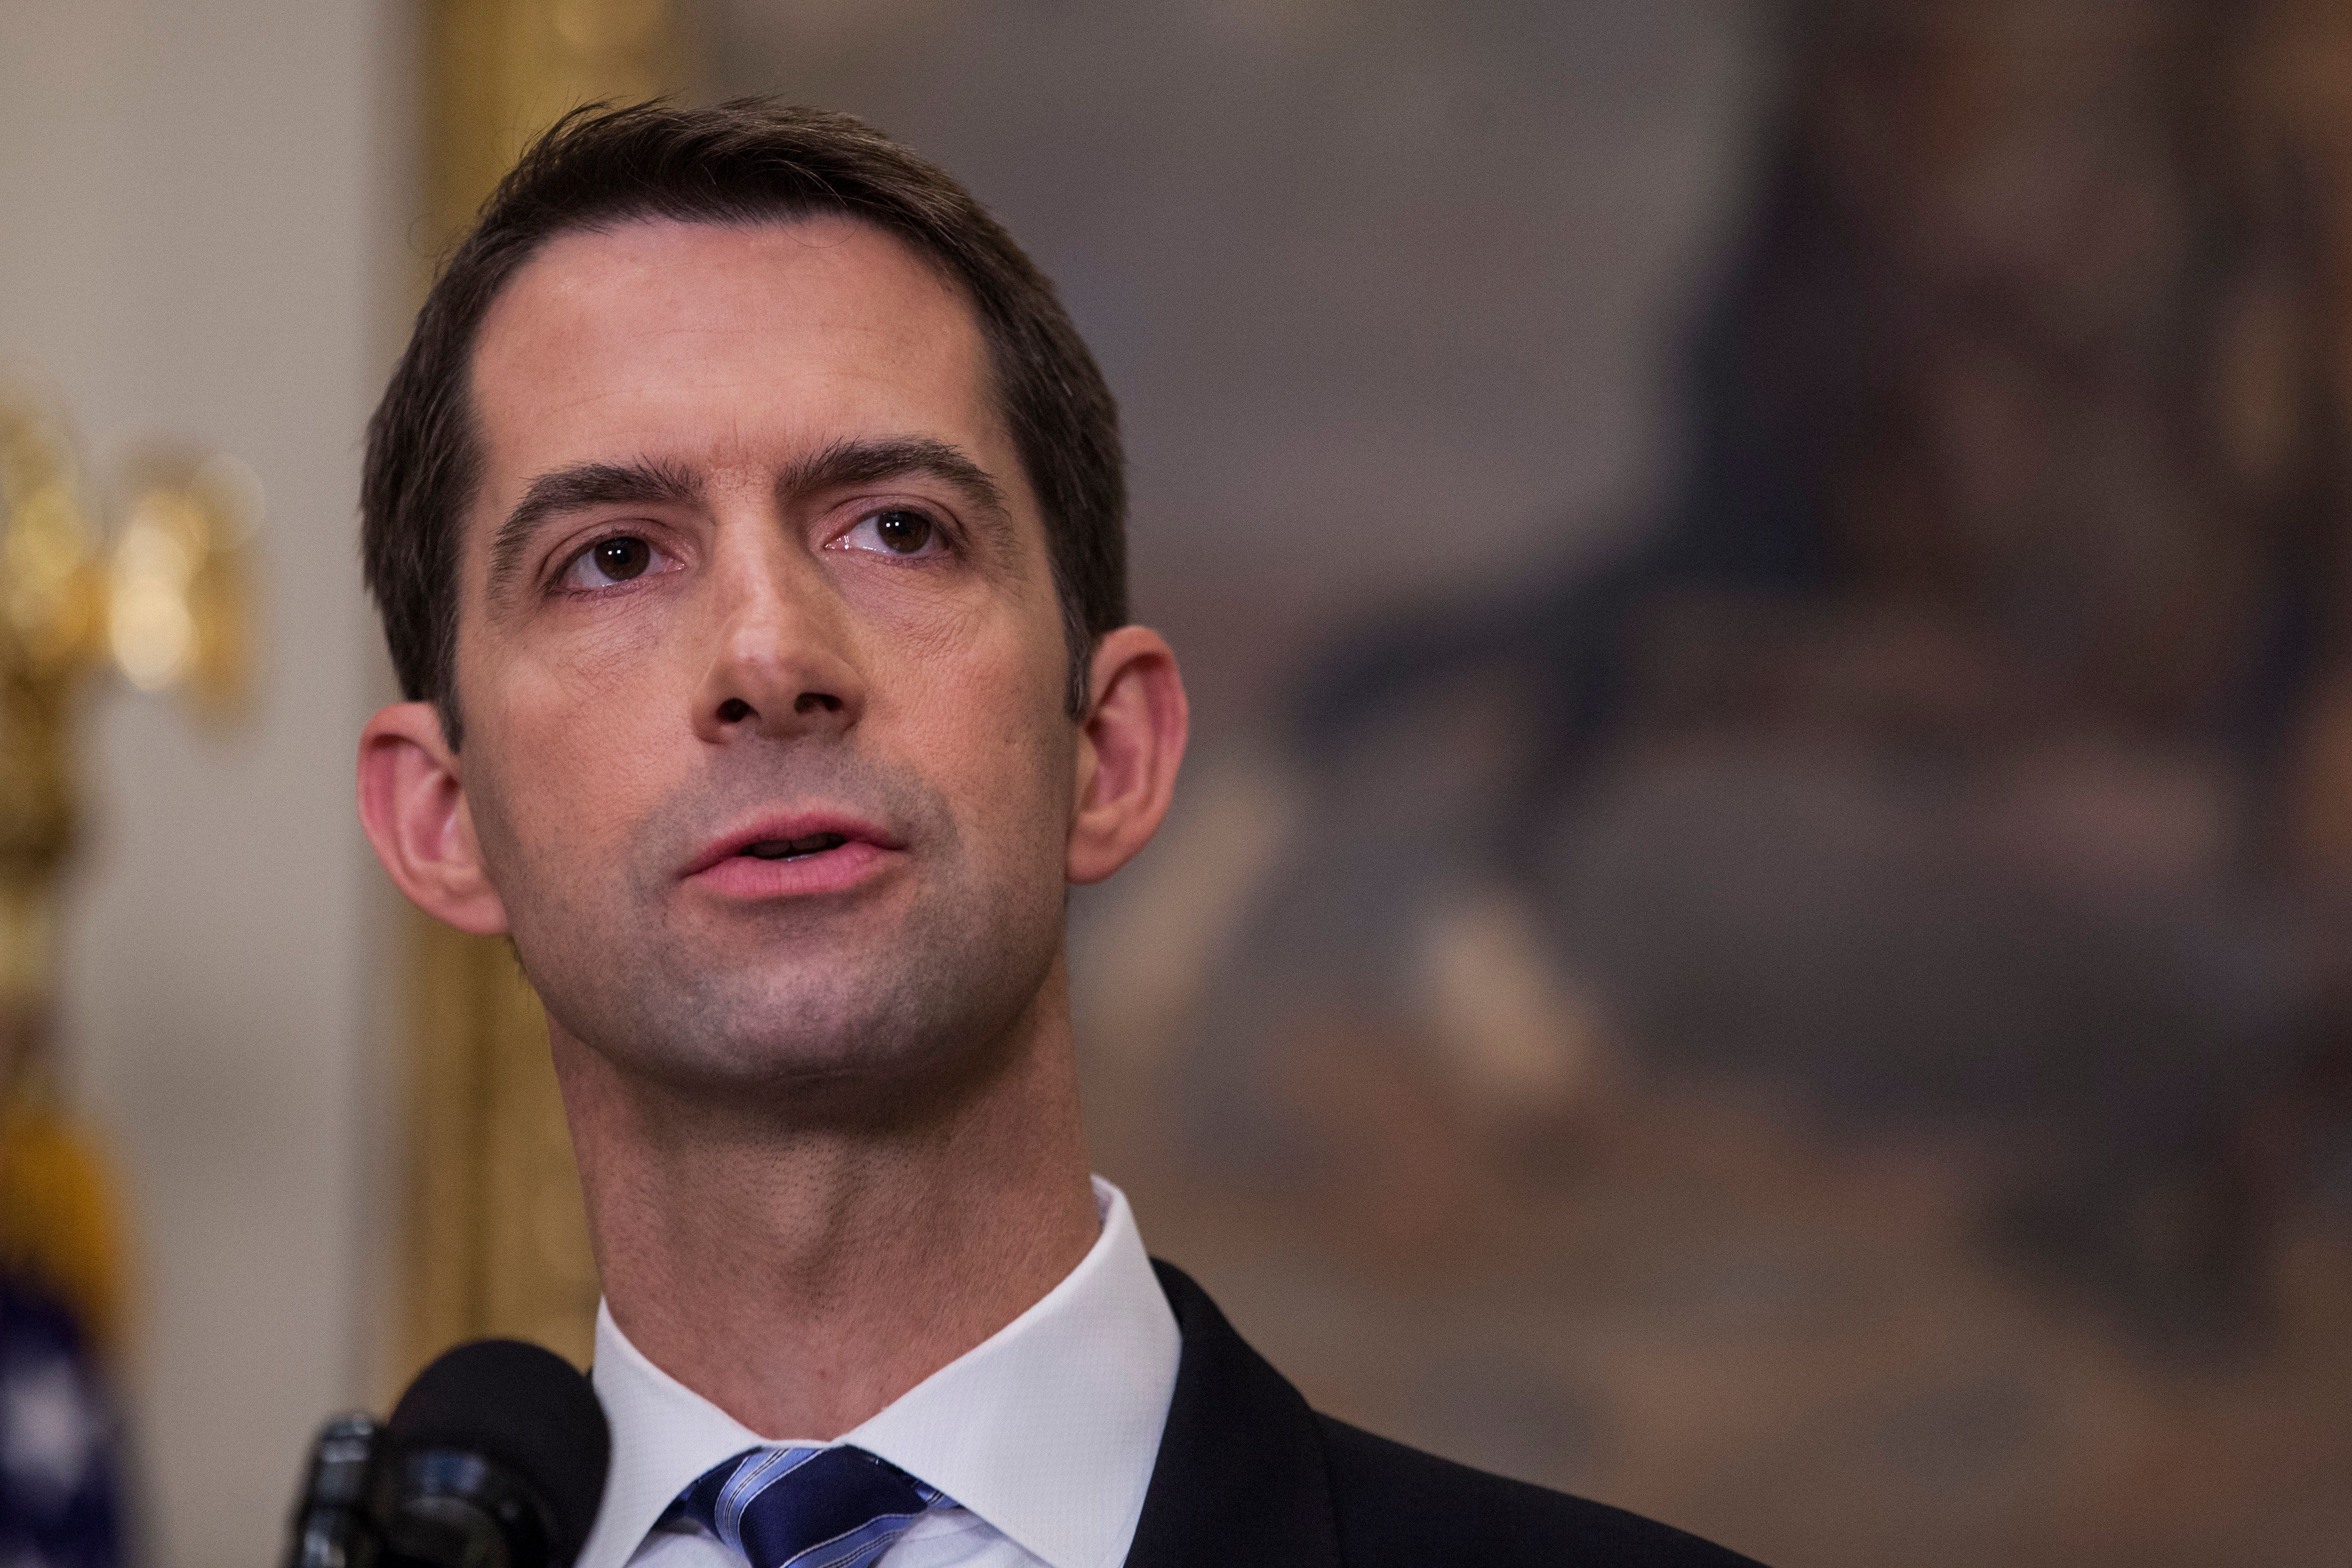 WASHINGTON, DC - AUGUST 2: (AFP OUT) Sen. Tom Cotton (R-AR) makes an announcement on the introduction of the Reforming American Immigration for a Strong Economy (RAISE) Act in the Roosevelt Room at the White House on August 2, 2017 in Washington, DC. The act aims to overhaul U.S. immigration by moving towards a 'merit-based' system. (Photo by Zach Gibson - Pool/Getty Images)